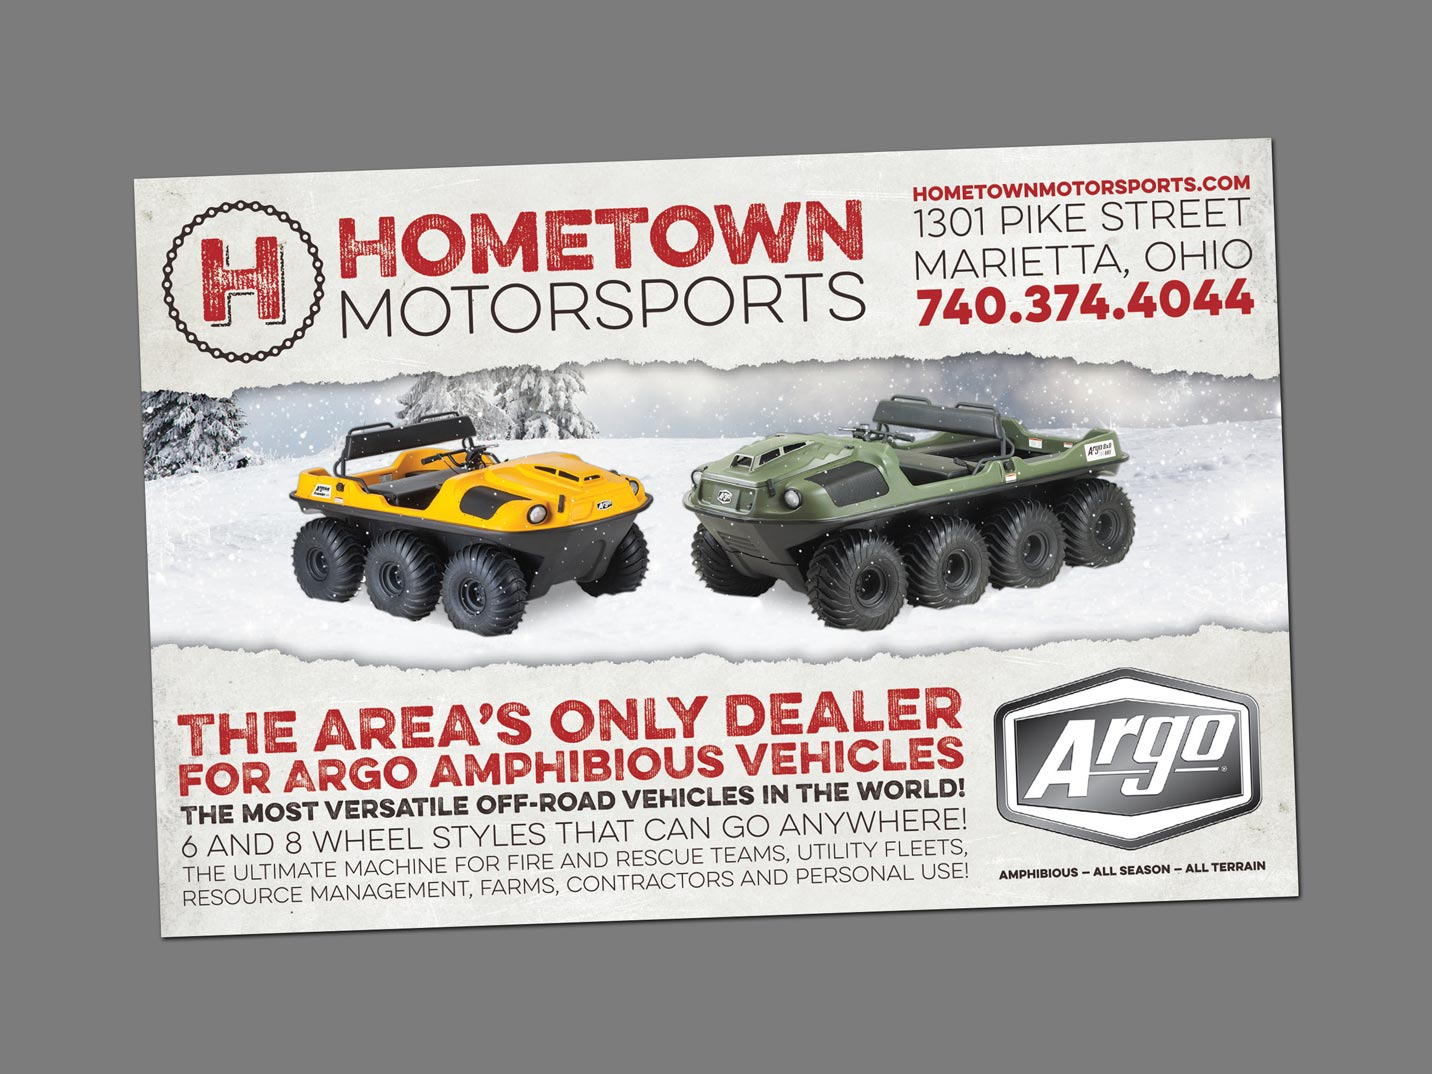 Hometown Motorsports Ads